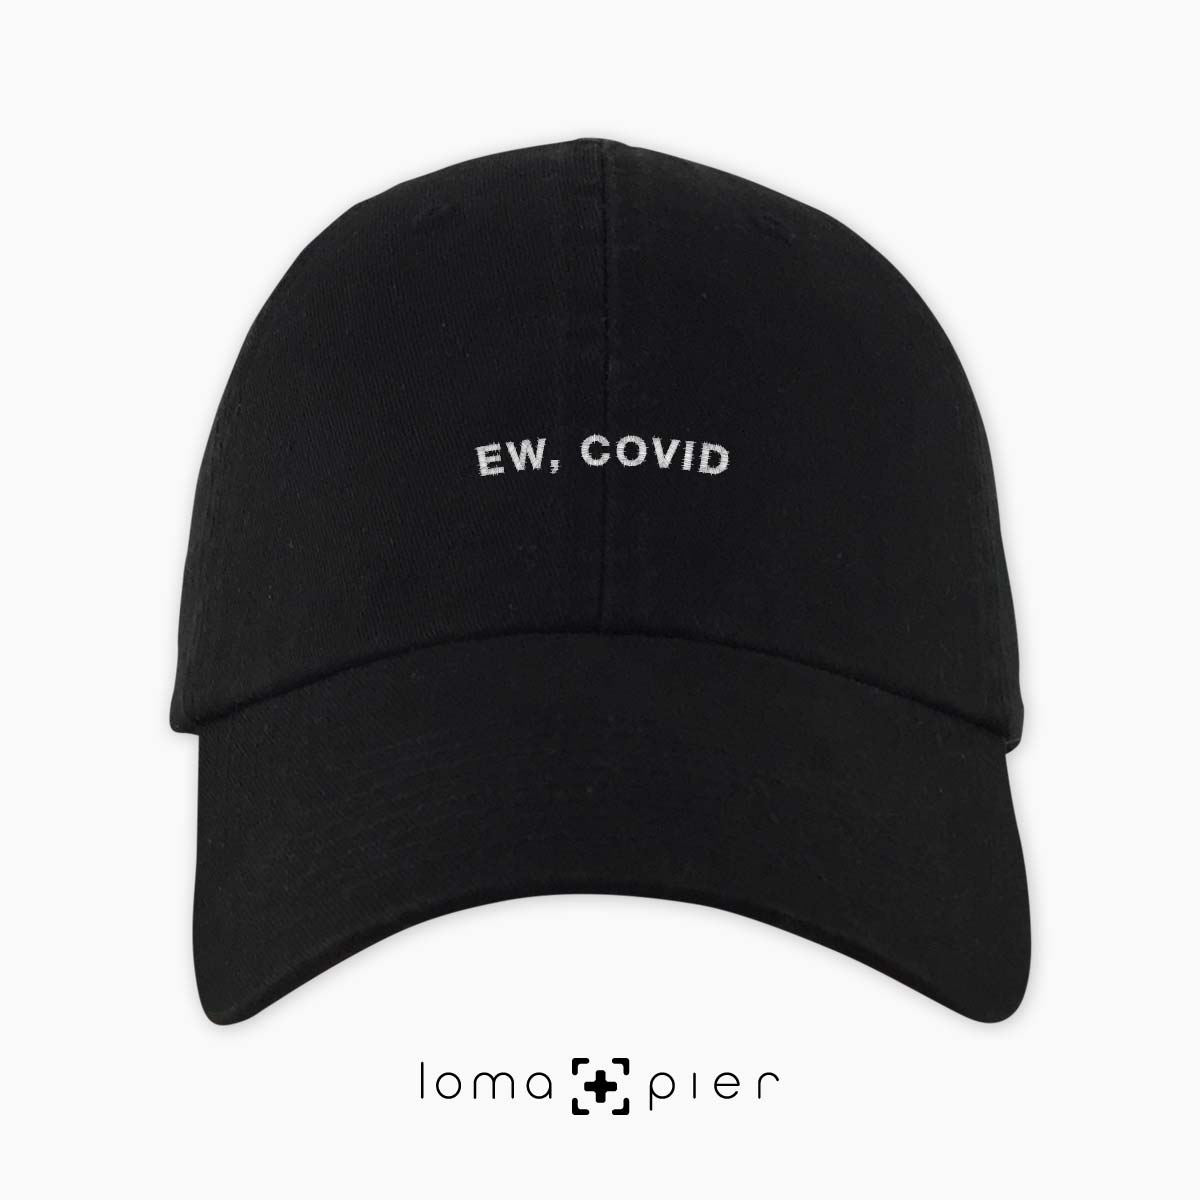 schitts creek EW COVID corona virus dat hat by loma+pier hat shop